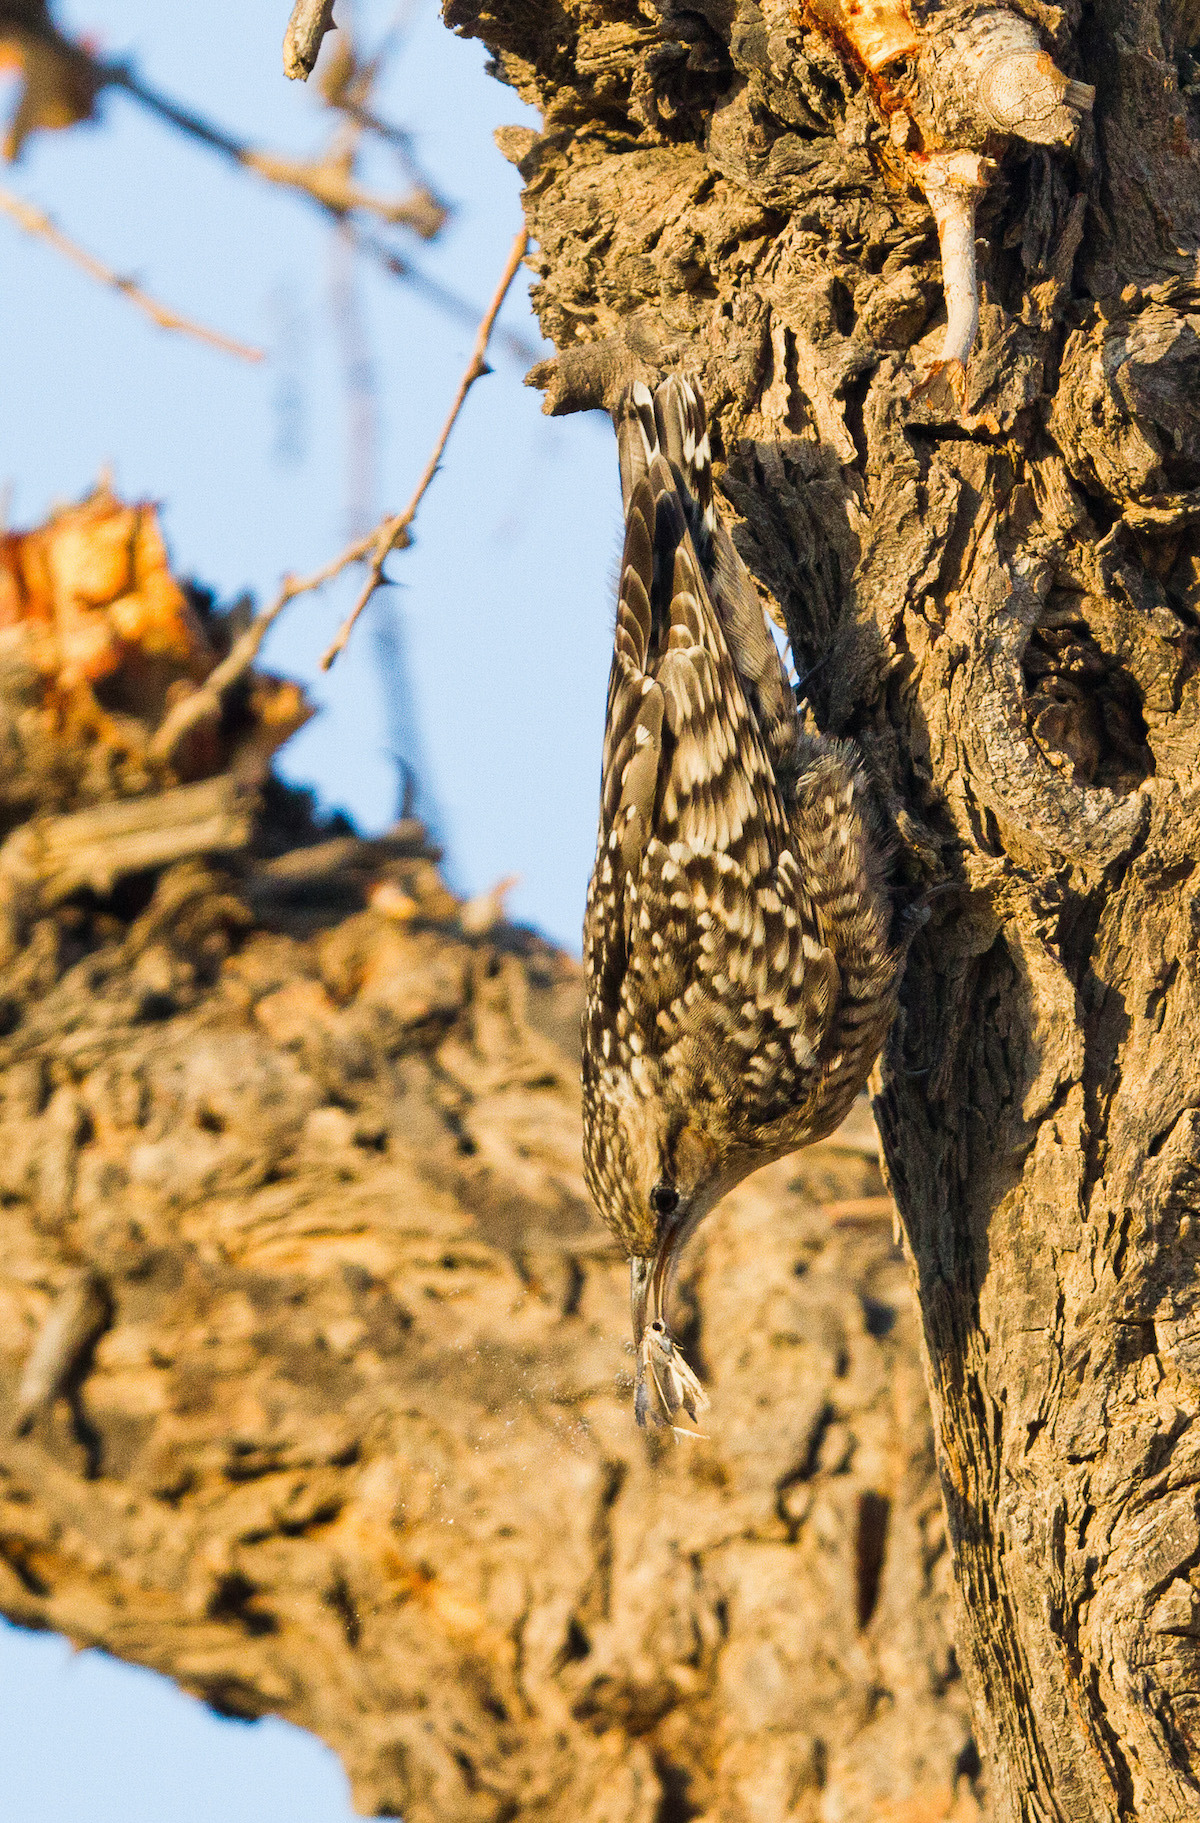 The Indian spotted creeper spends most of its time on trees, foraging in nooks and crannies for small invertebrates. Photo: Puneetcps CC BY-SA 4.0